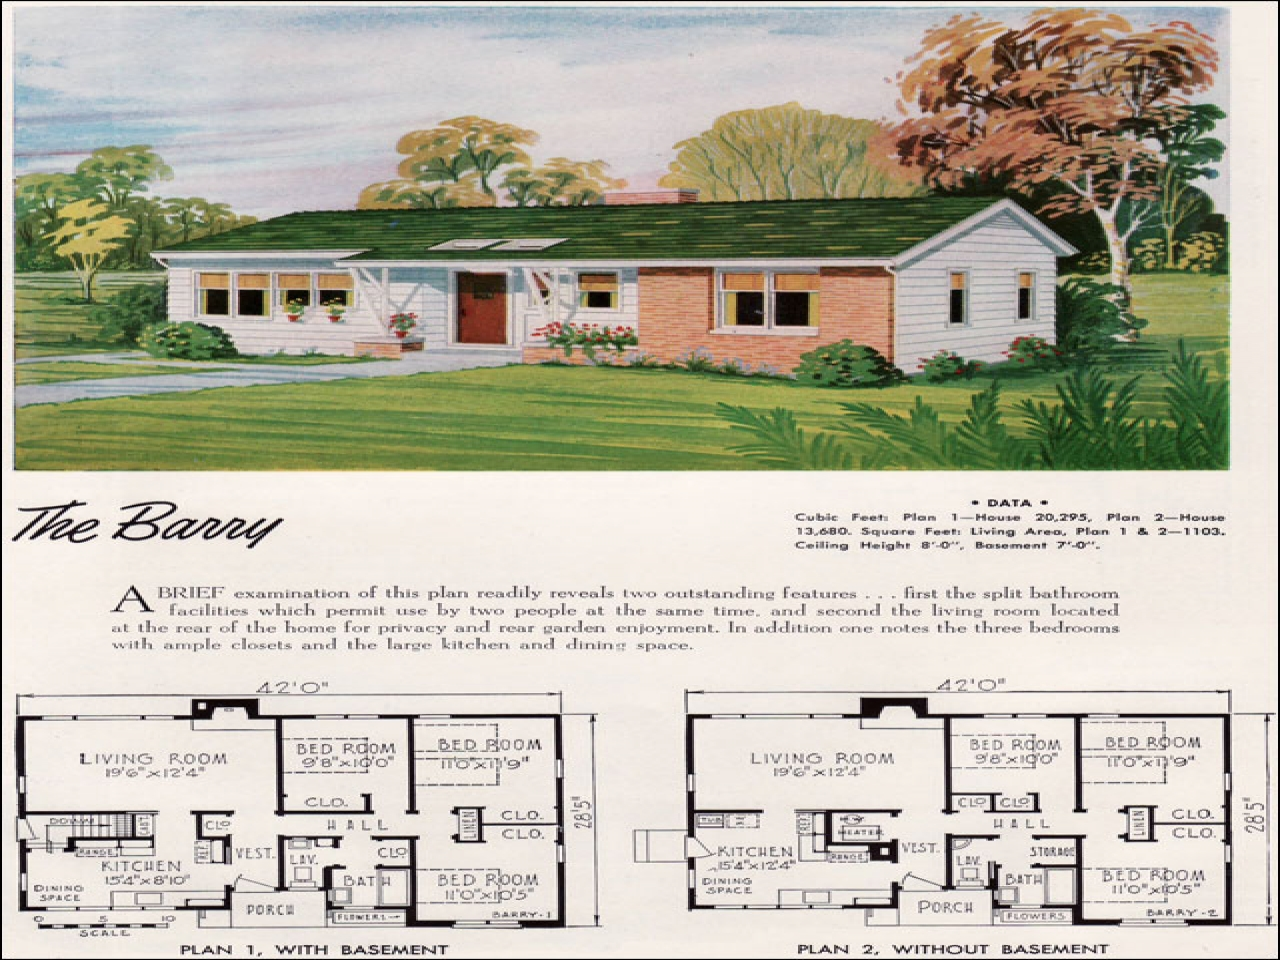 Midcentury modern house plans house plans with mid redone mid century ranch house plans mid - Mid century modern home plans ...